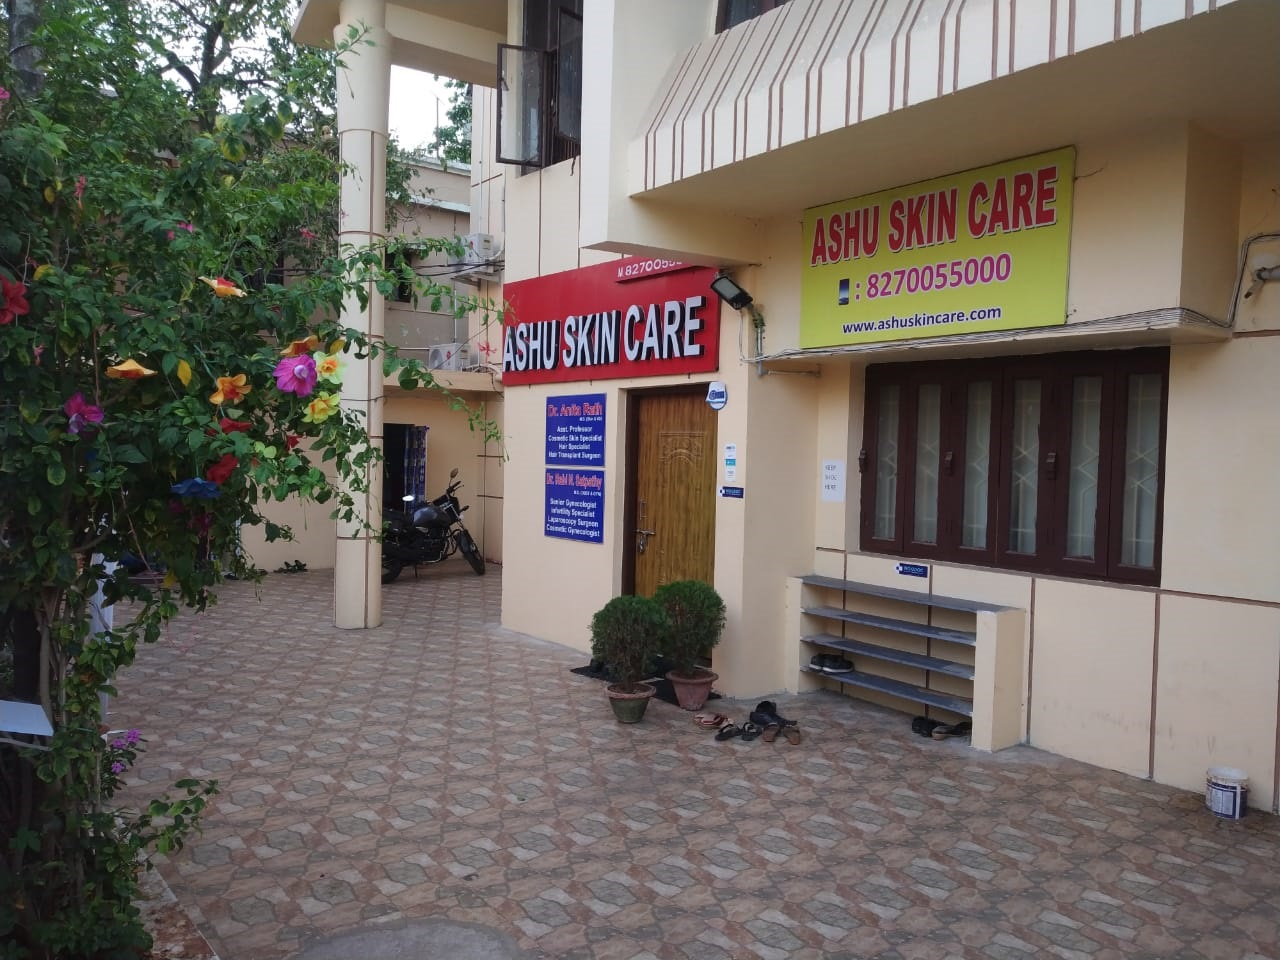 no-1 Hair transplant center in bhubaneswar